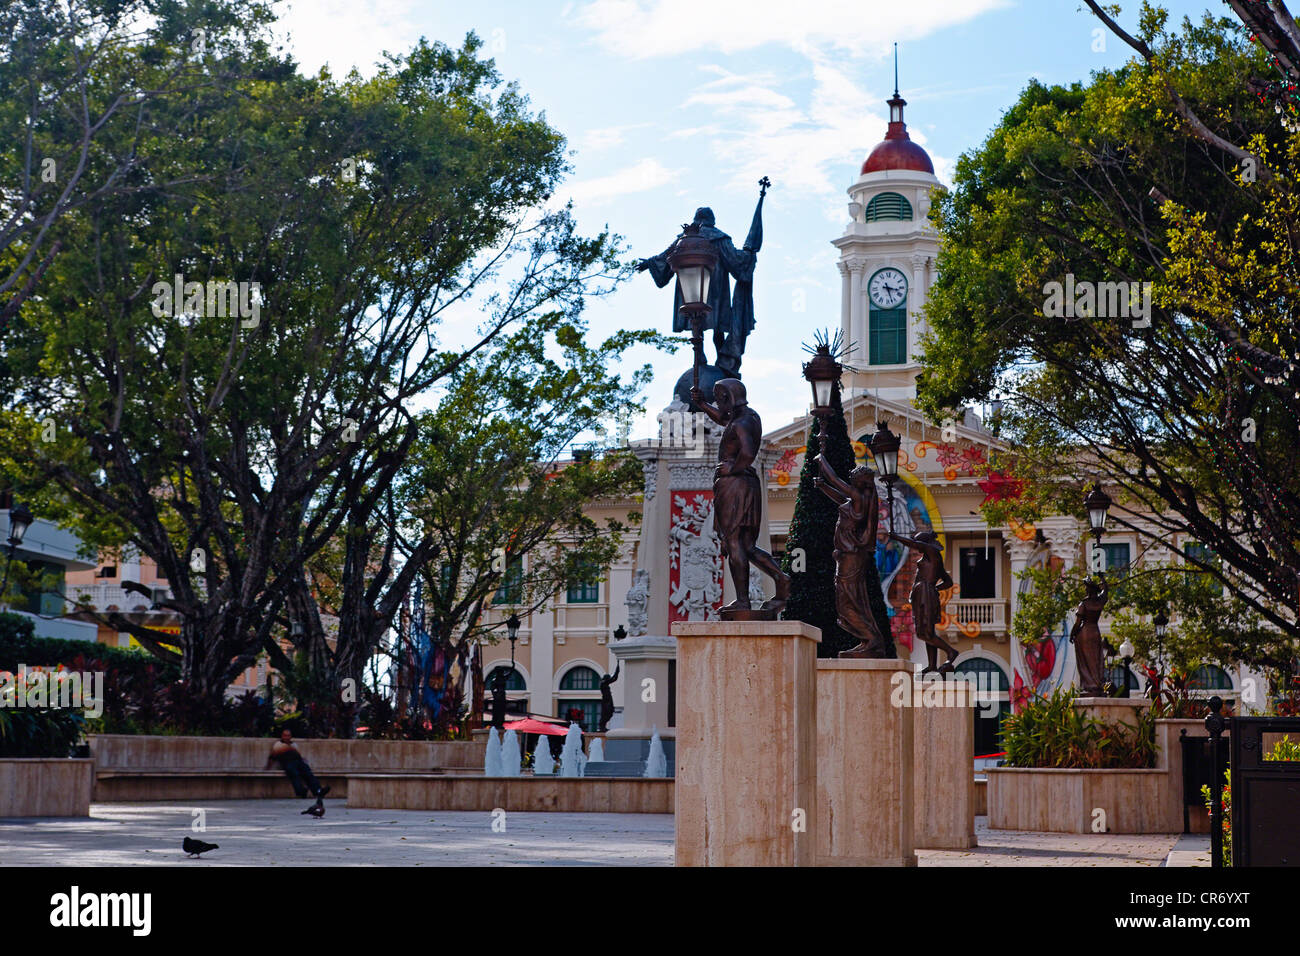 Low Angle View of Plaza Colon with the City Hall and the Statue of Christopher Columbus, Mayaguez, Puerto Rico - Stock Image